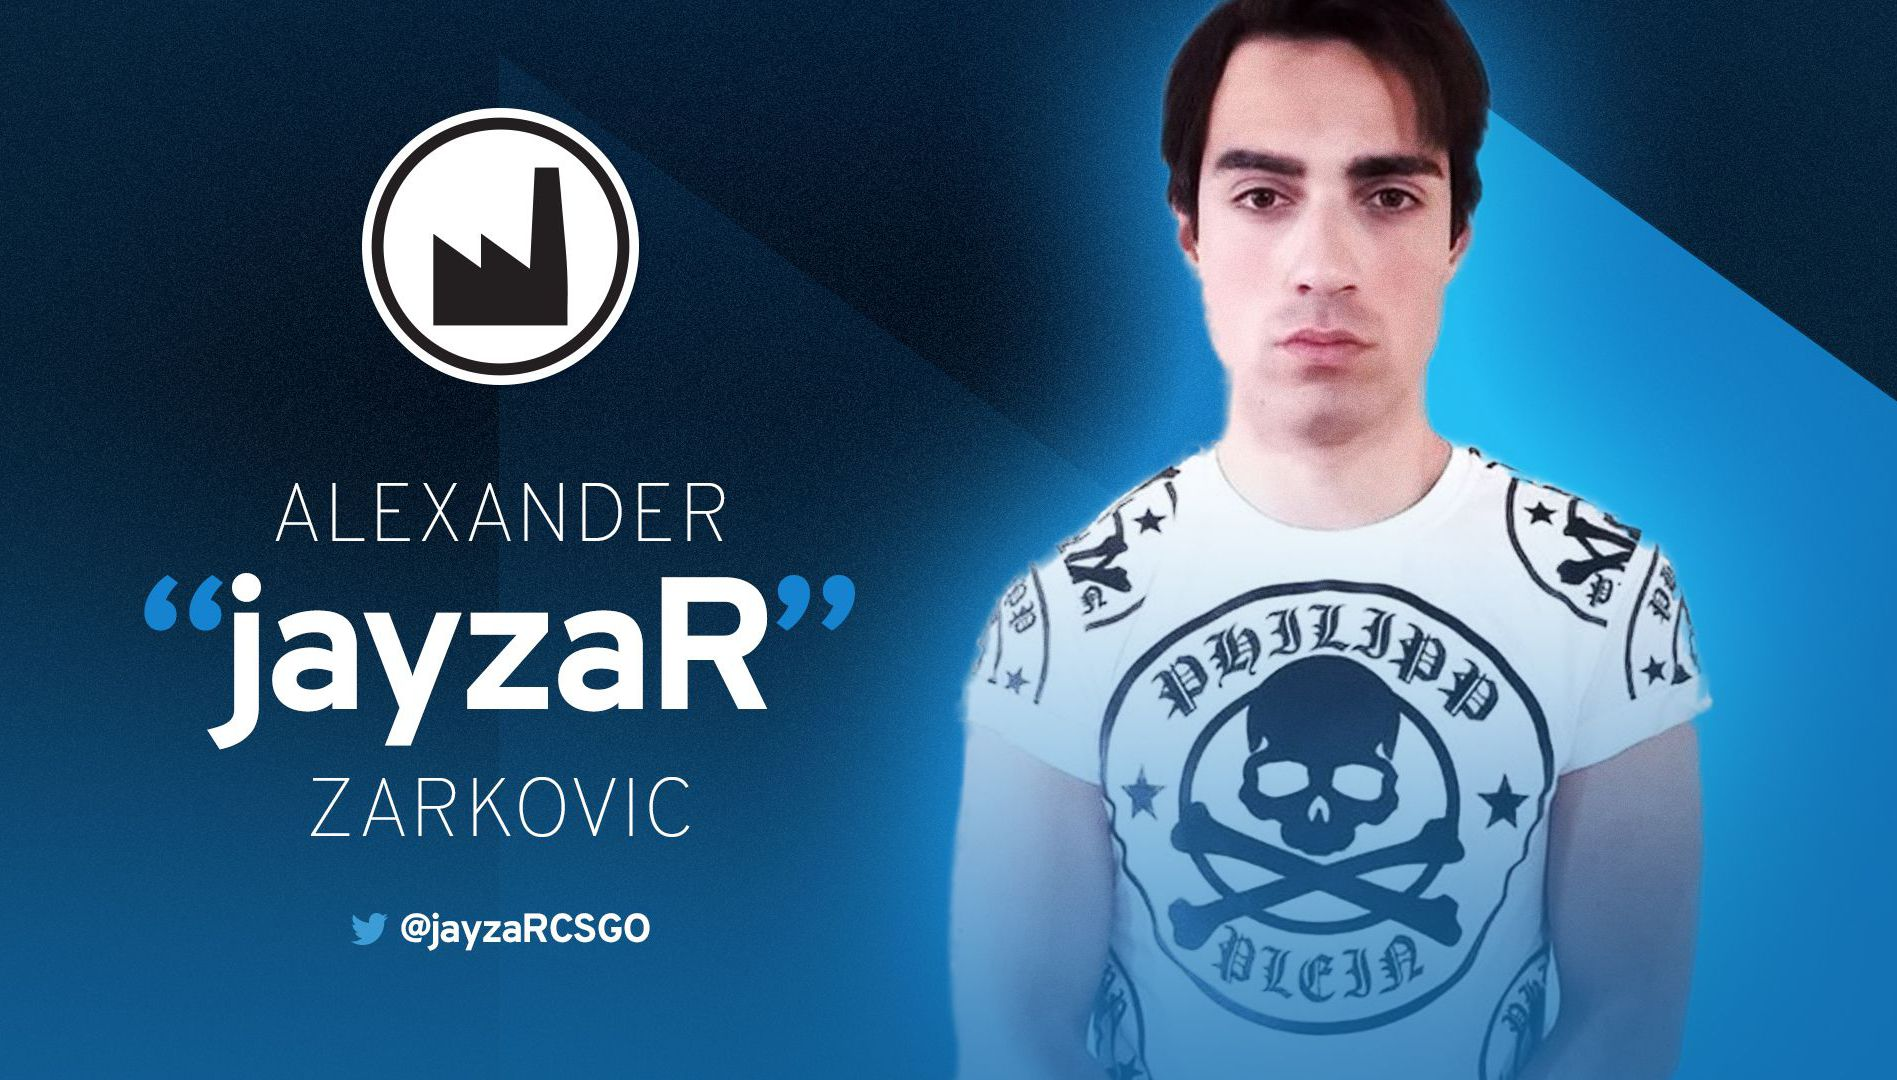 Valiance & Co bring in jayzaR over NENO, who found out from HLTV | News